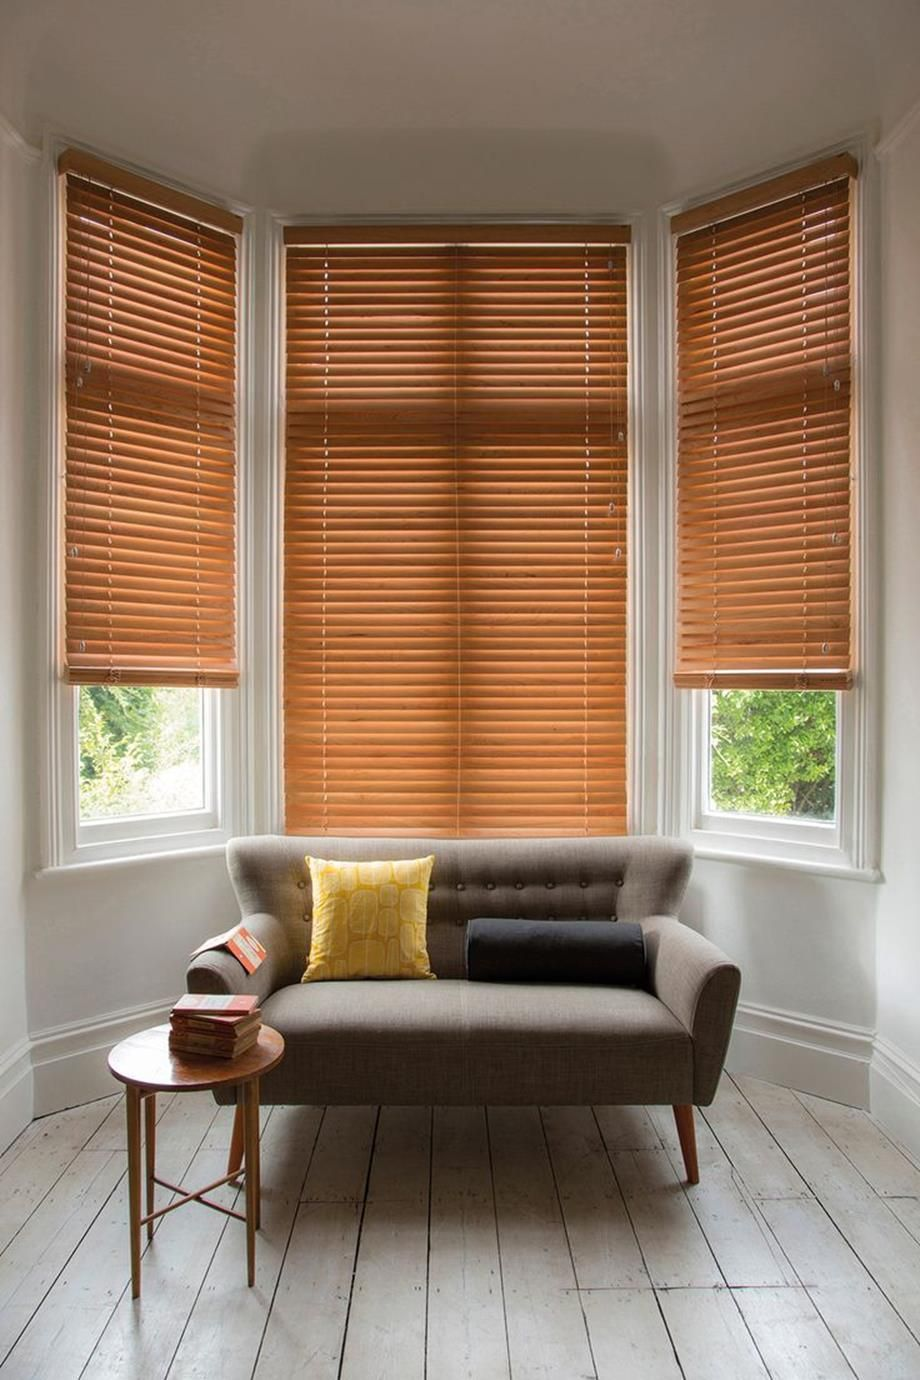 Bamboo Sliding Panel Track Blinds: Wooden Window Blinds 5 #VerticalBlindsGrey